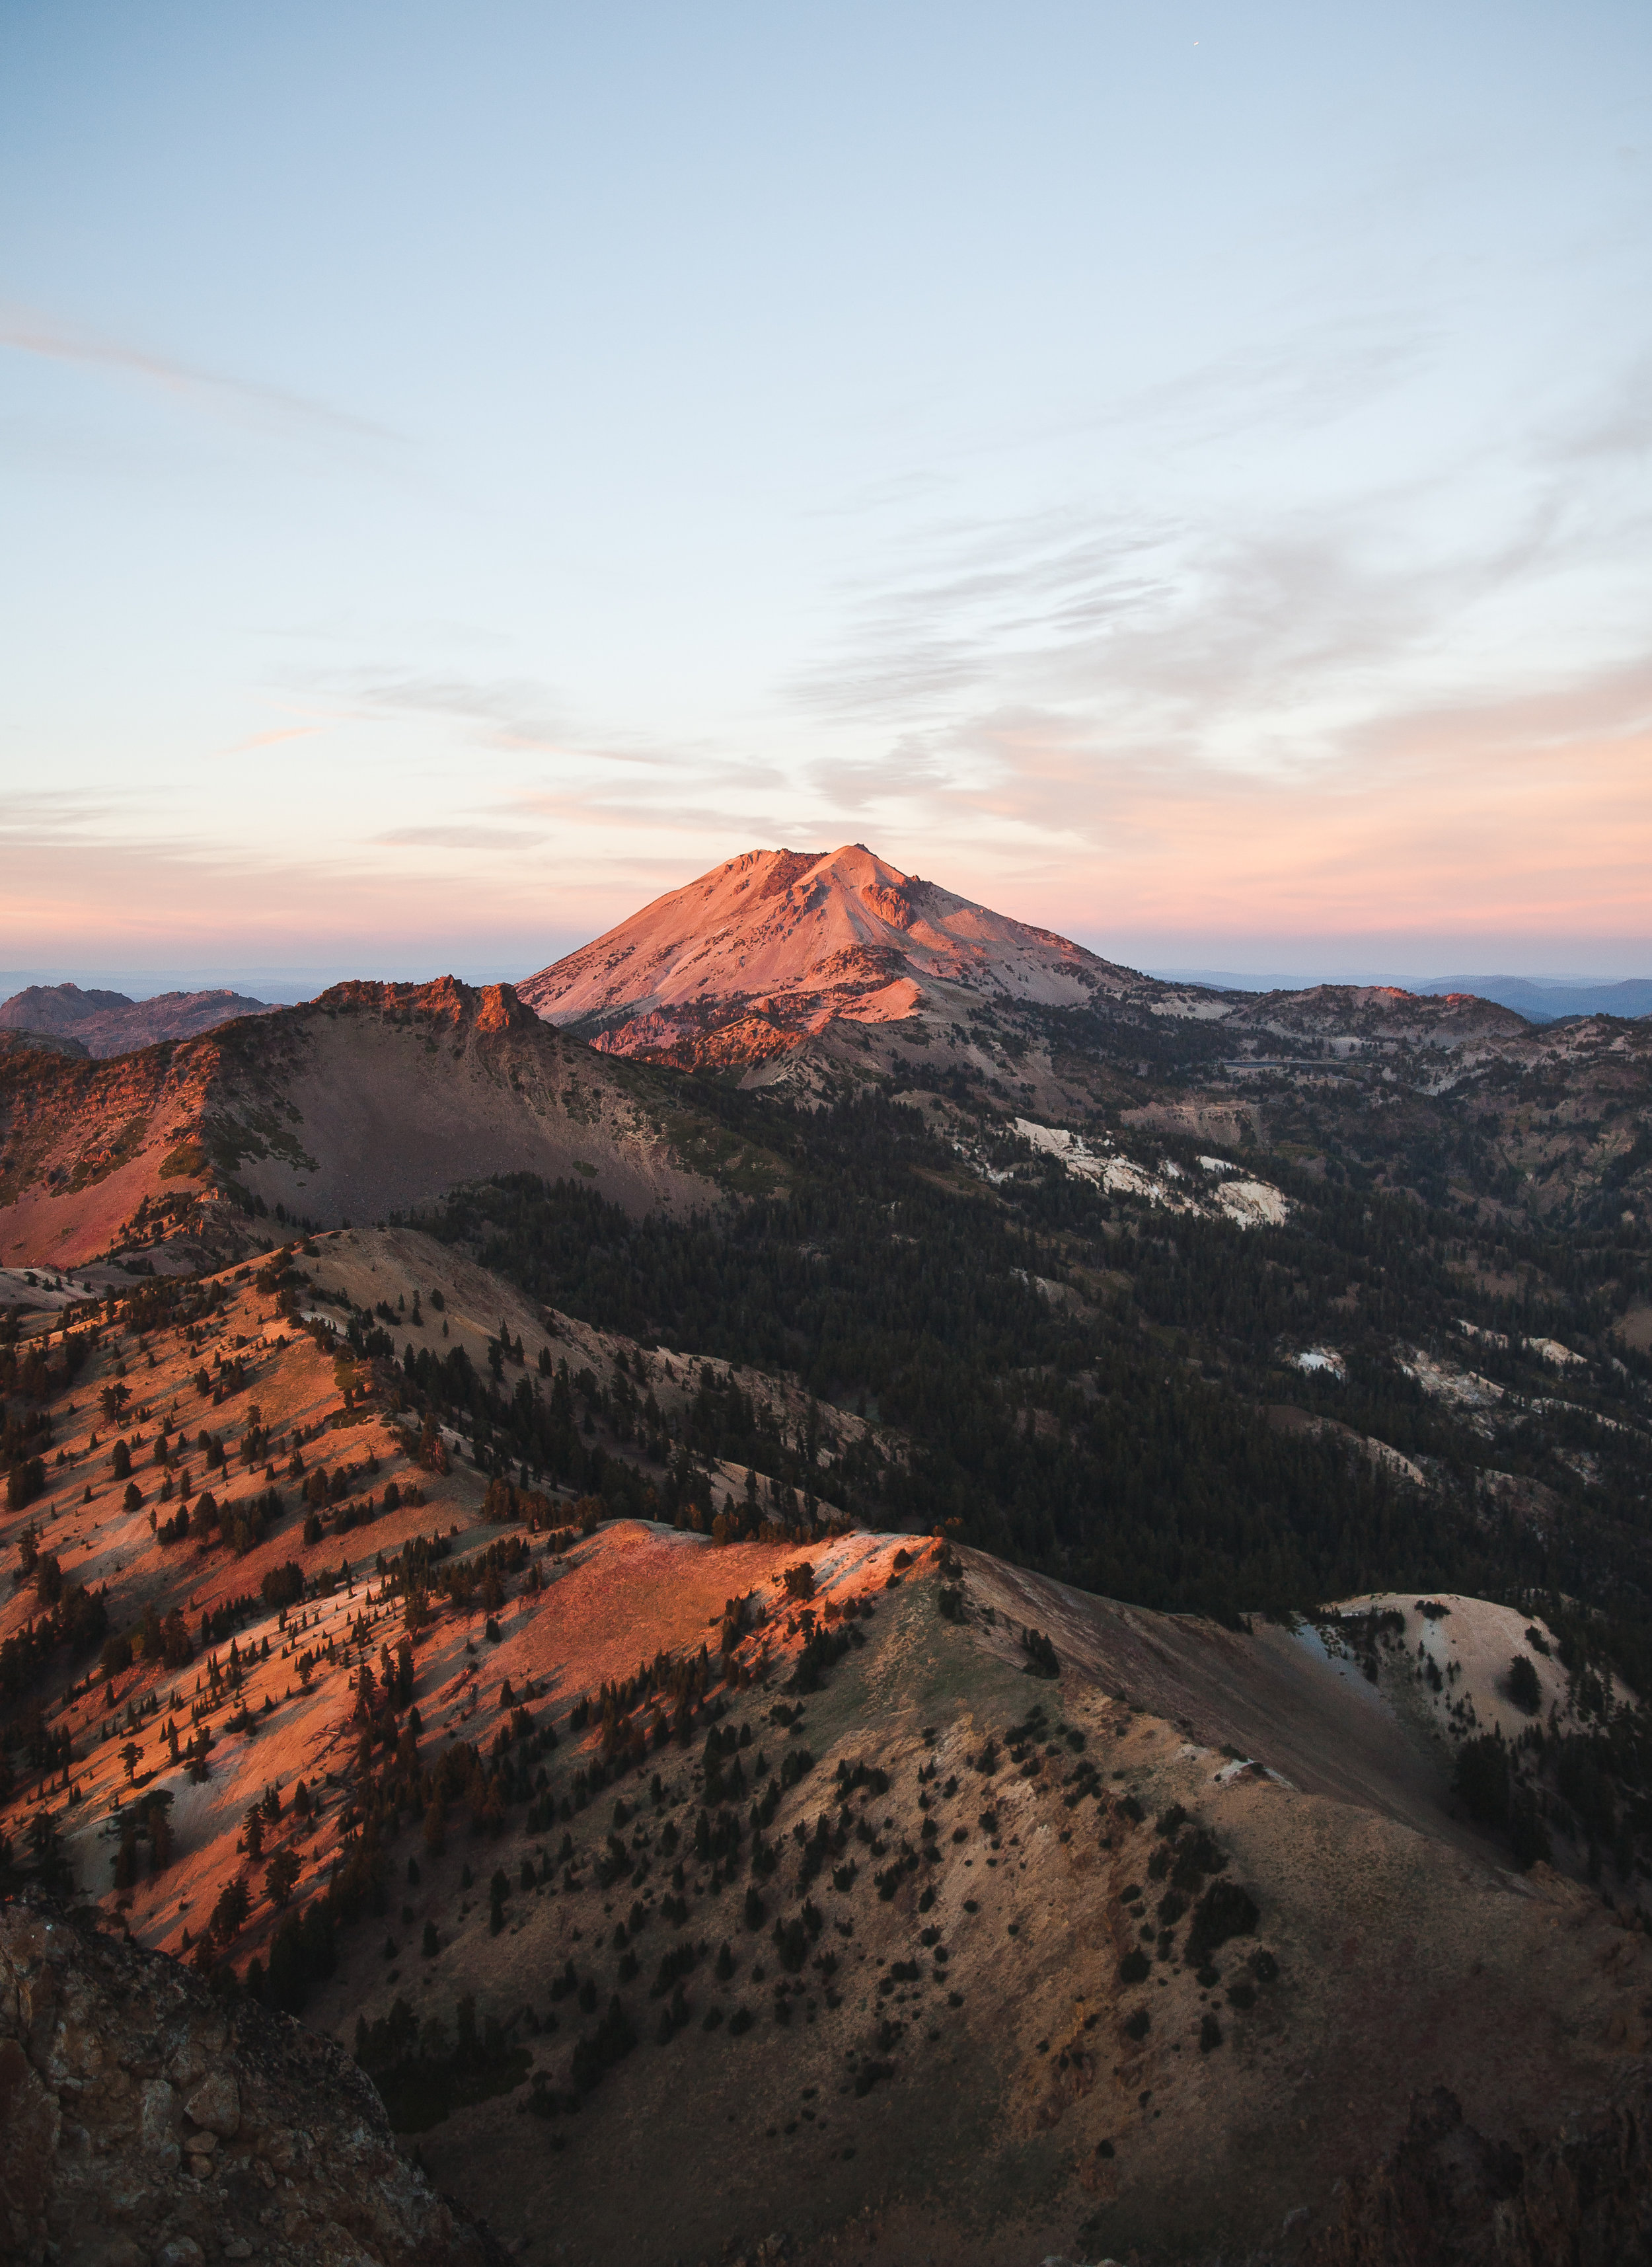 A view of everything. mount Diller and Eagle peak in line in the foreground, Lassen peak in the center, Lake Helen to the right of the peak, and Chaos Crags to the left of the peak.